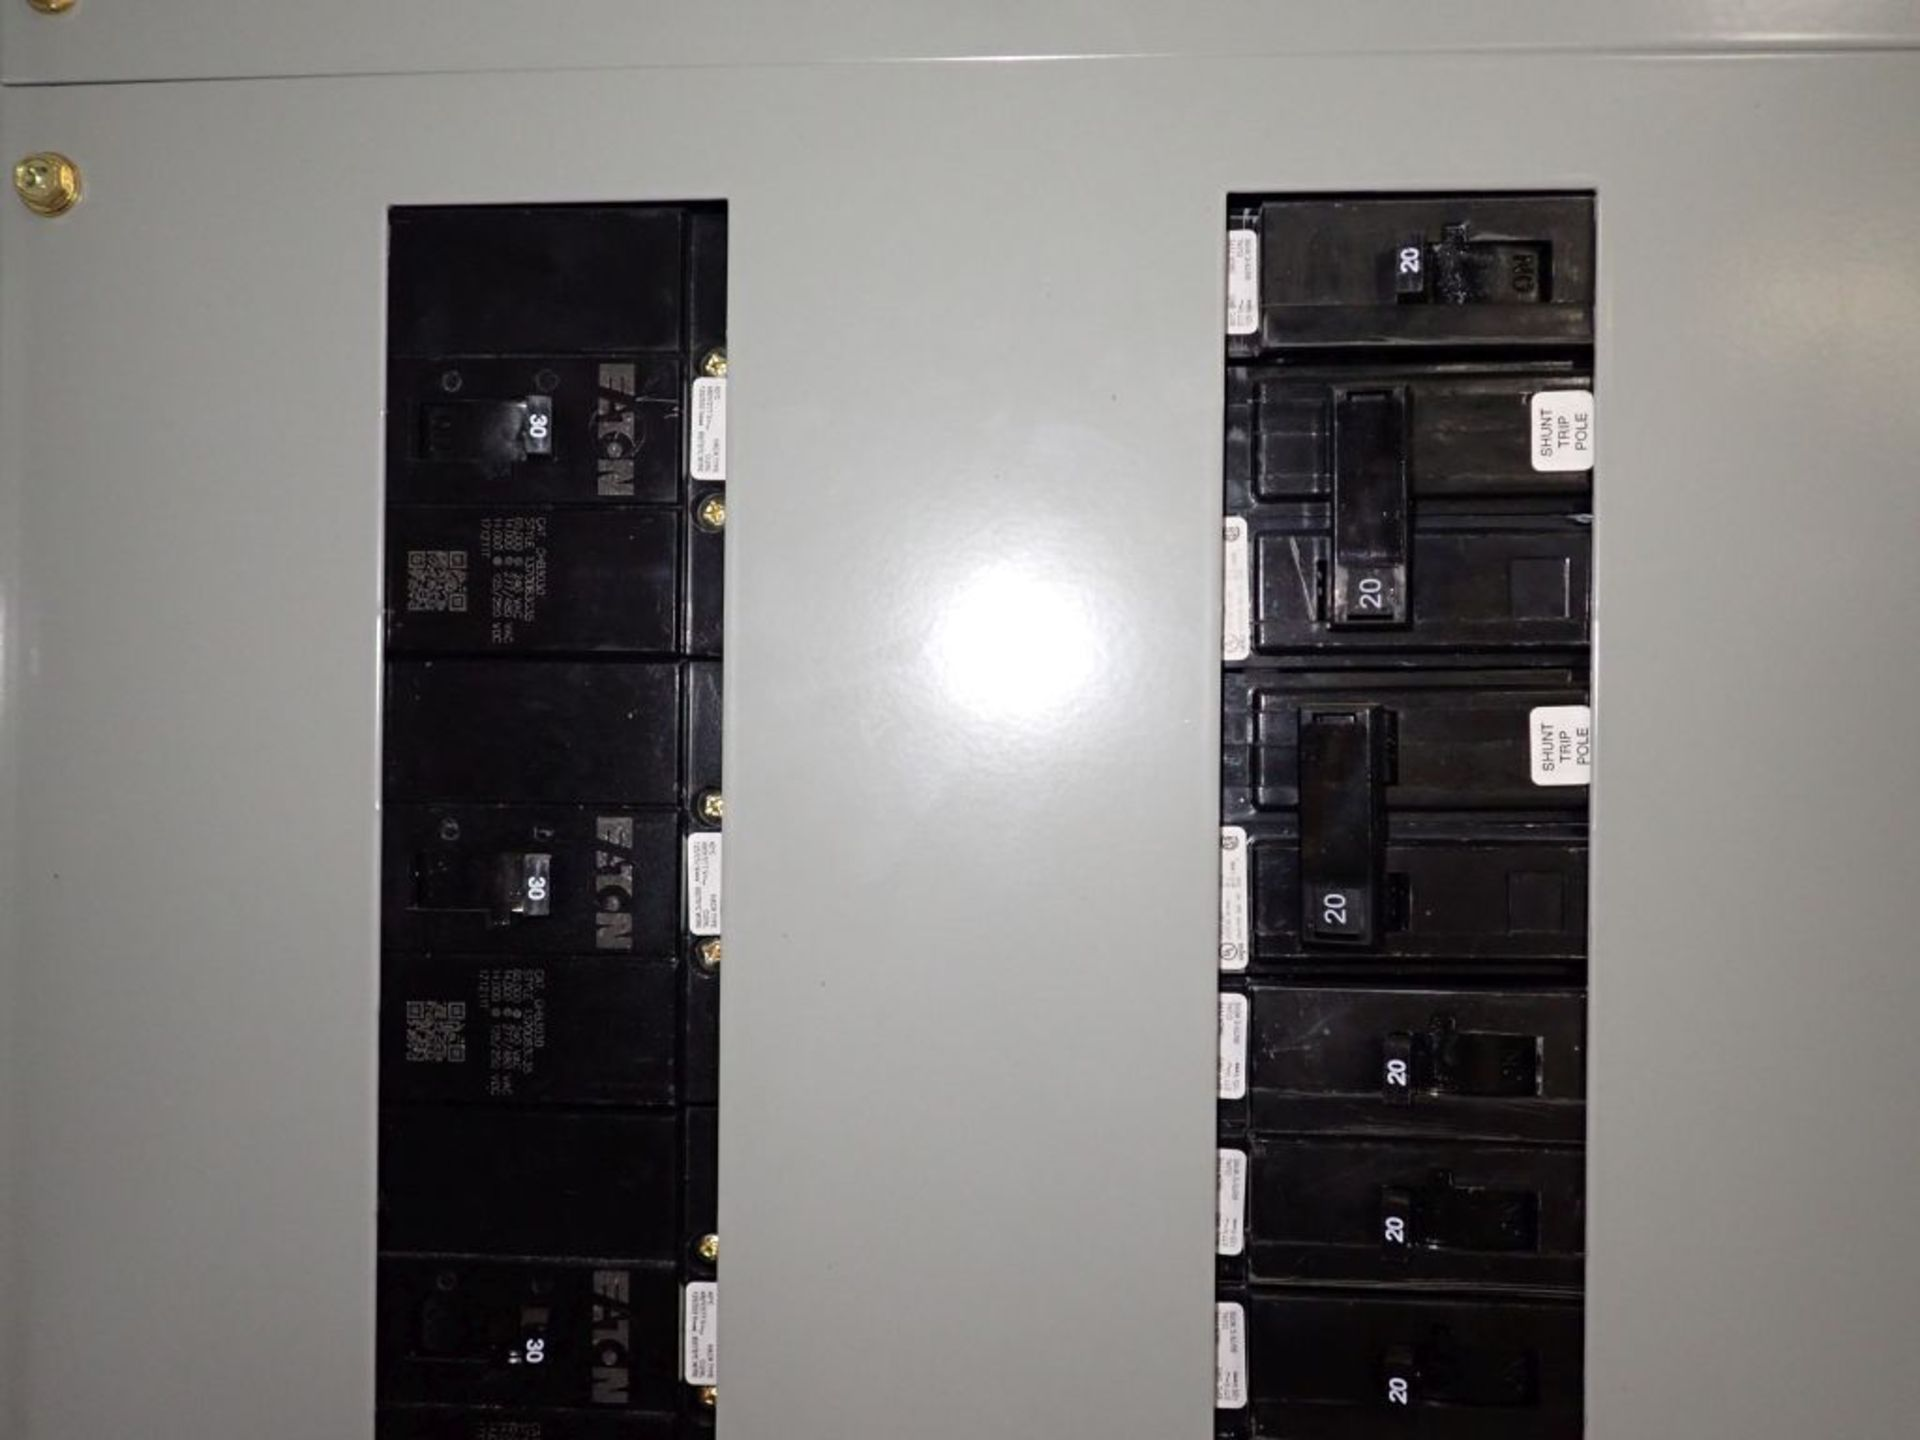 Eaton Freedom 2100 Series Motor Control Center   (2) F206-15A-10HP; (1) F206-30A-10HP; (1) FDRB- - Image 46 of 61